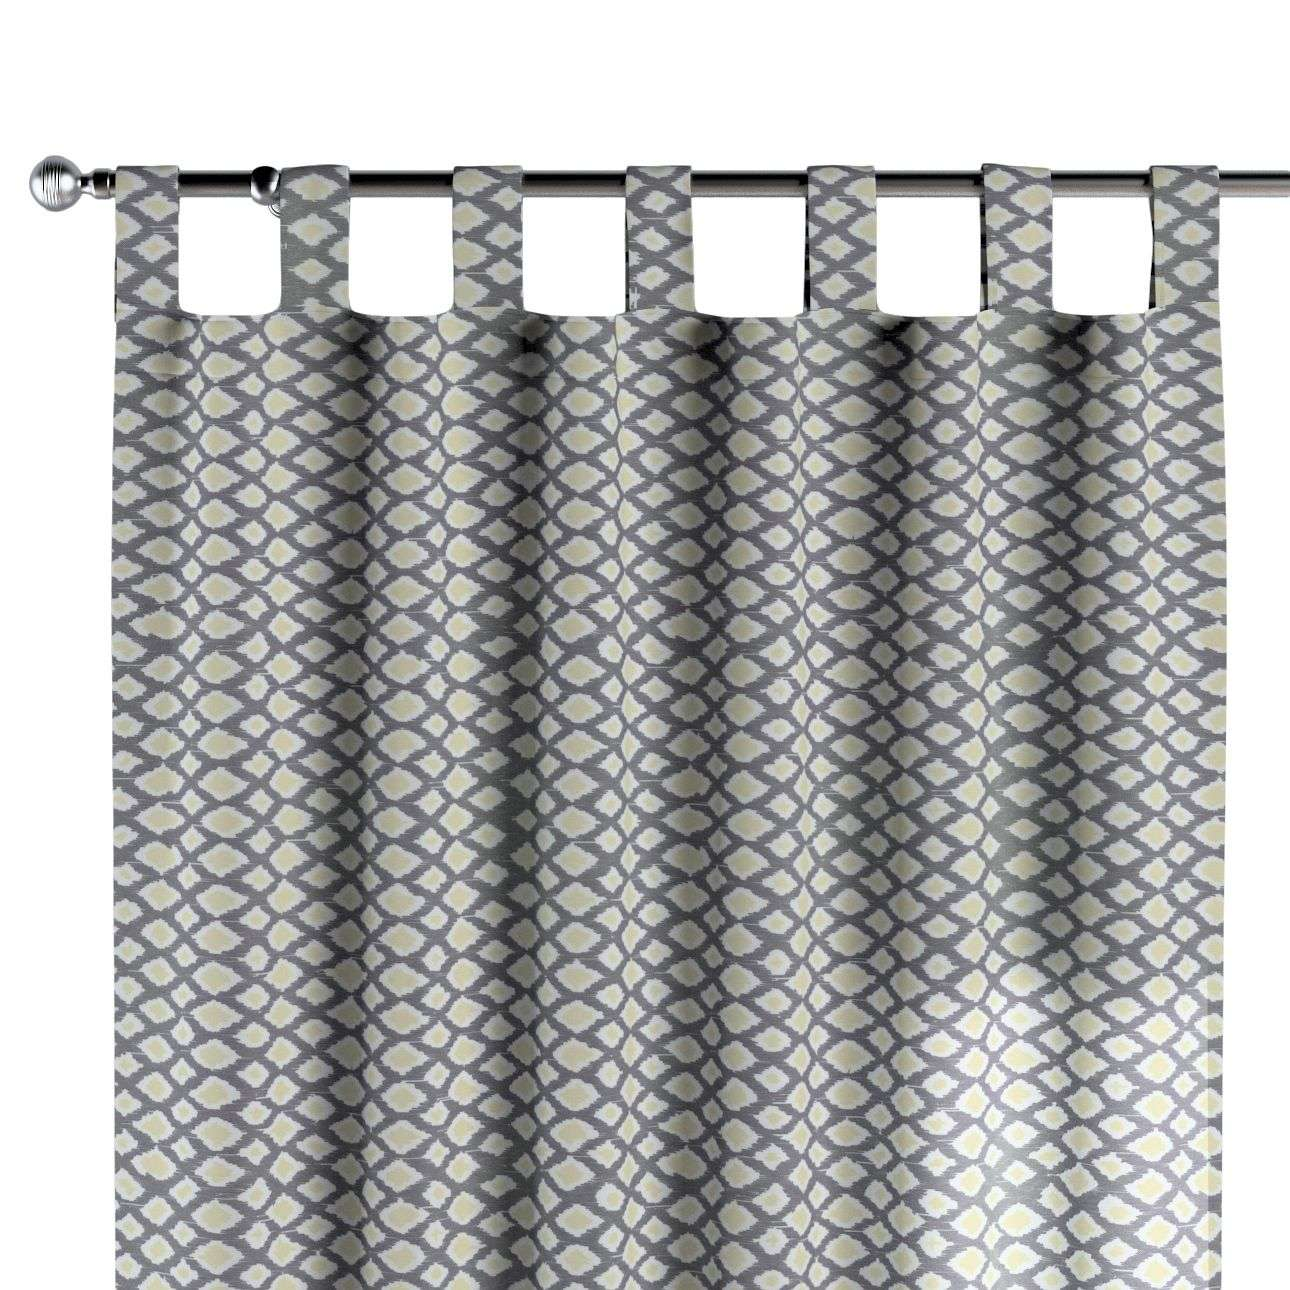 Tab top curtains in collection Comics/Geometrical, fabric: 141-21